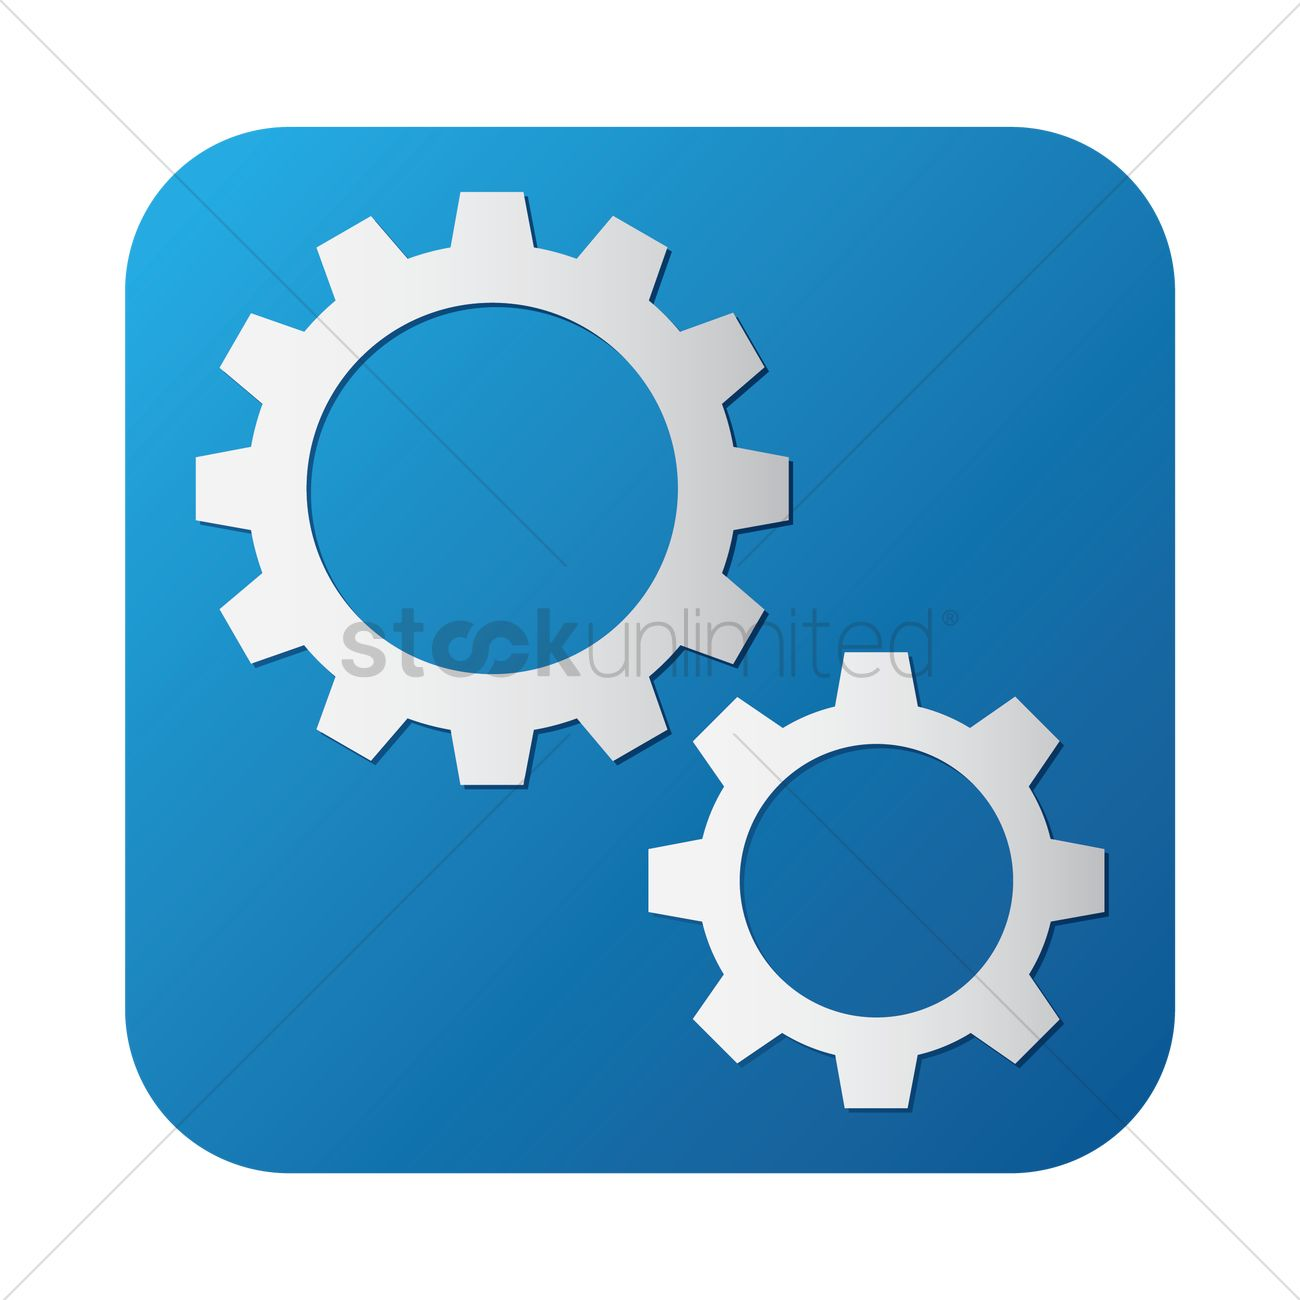 Settings icon Vector Image - 1629291 | StockUnlimited